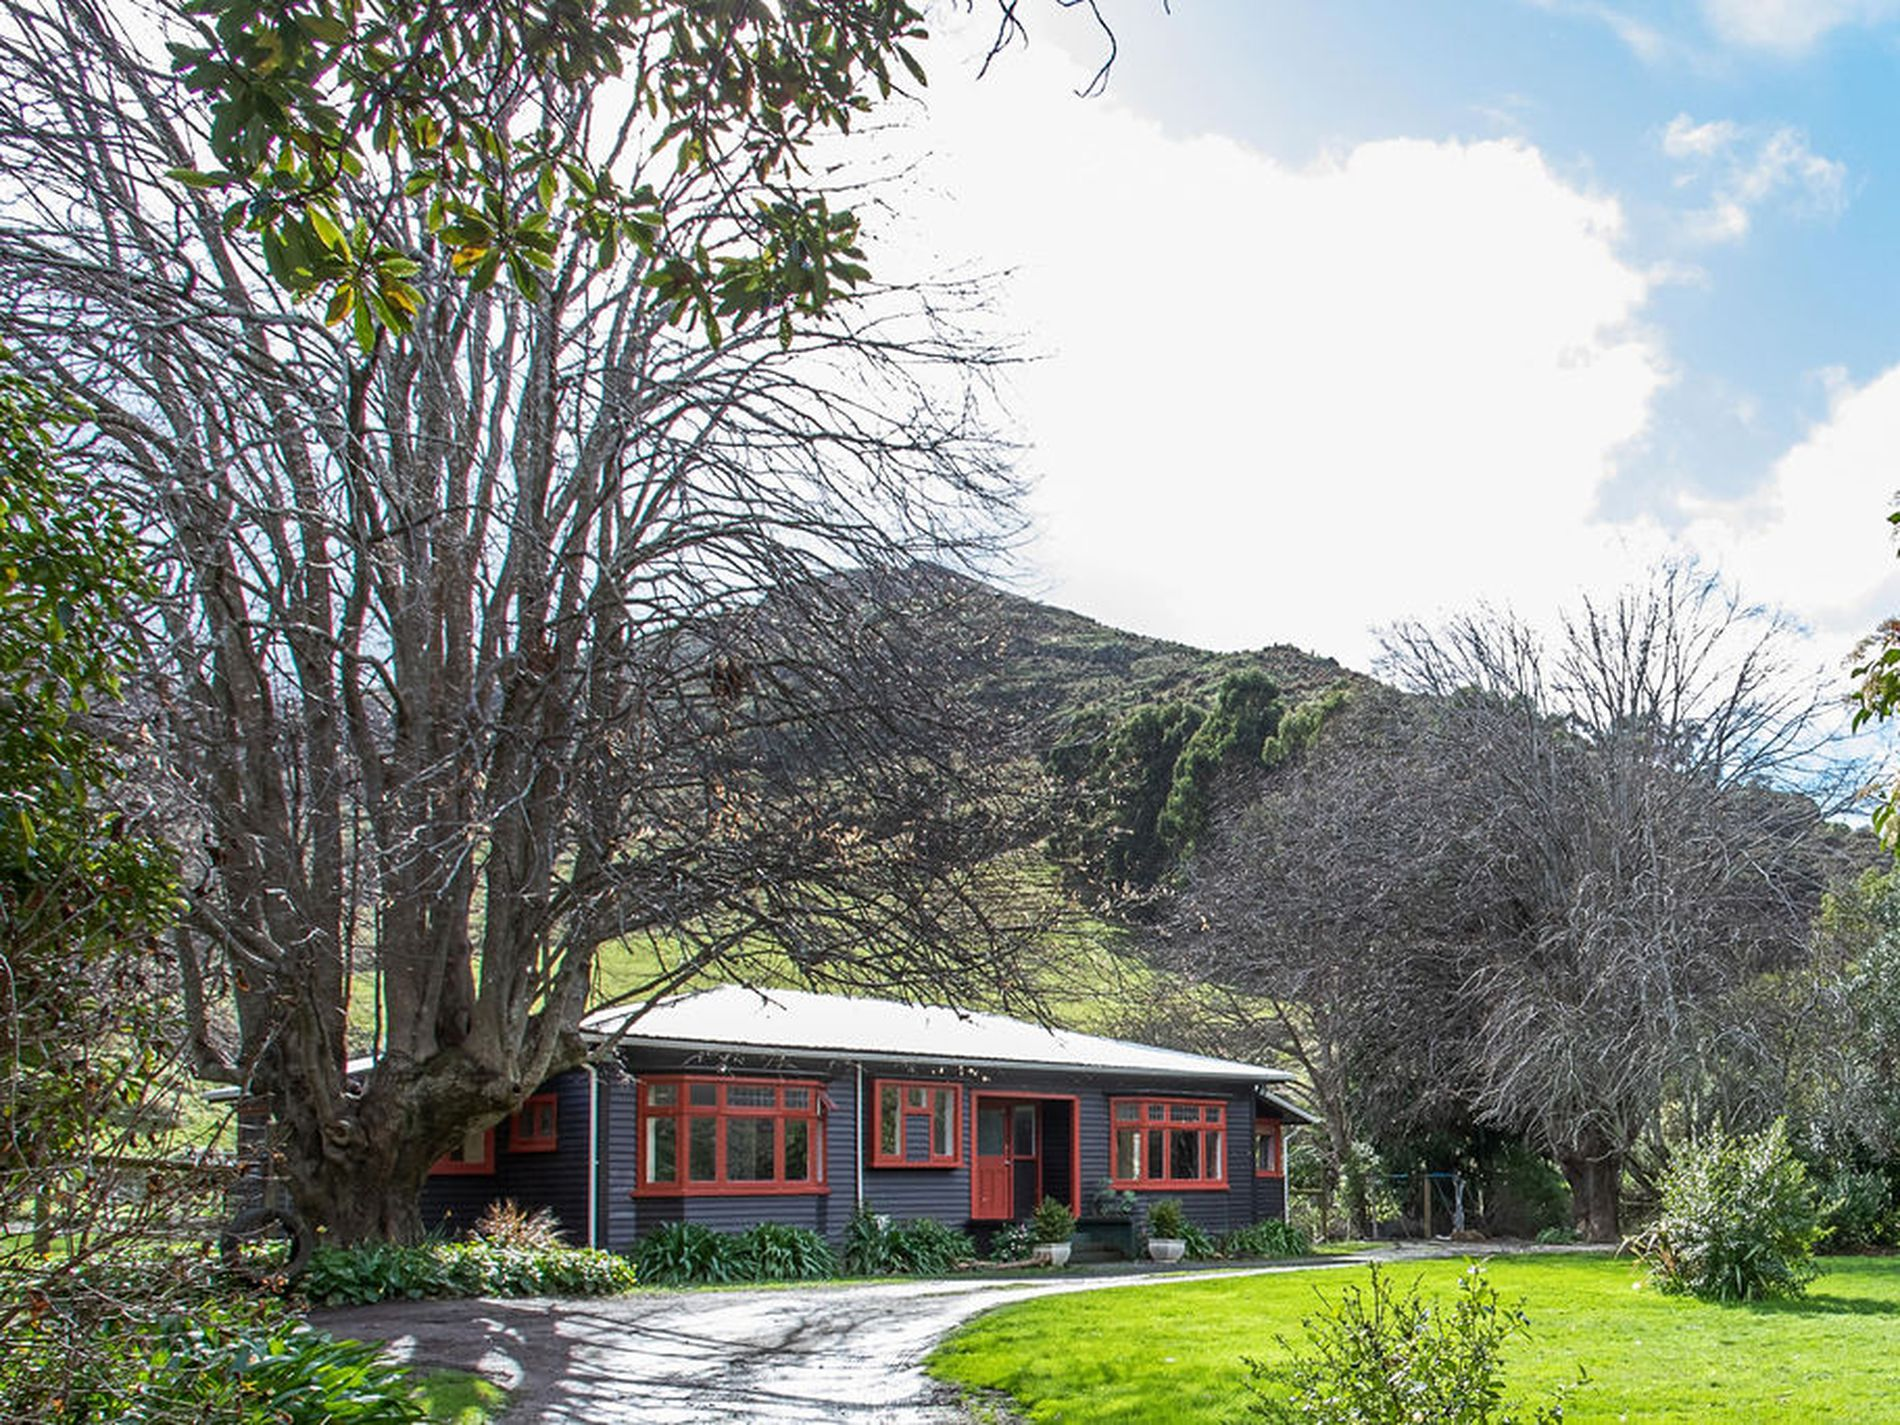 3883 Christchurch Akaroa Road, Little River